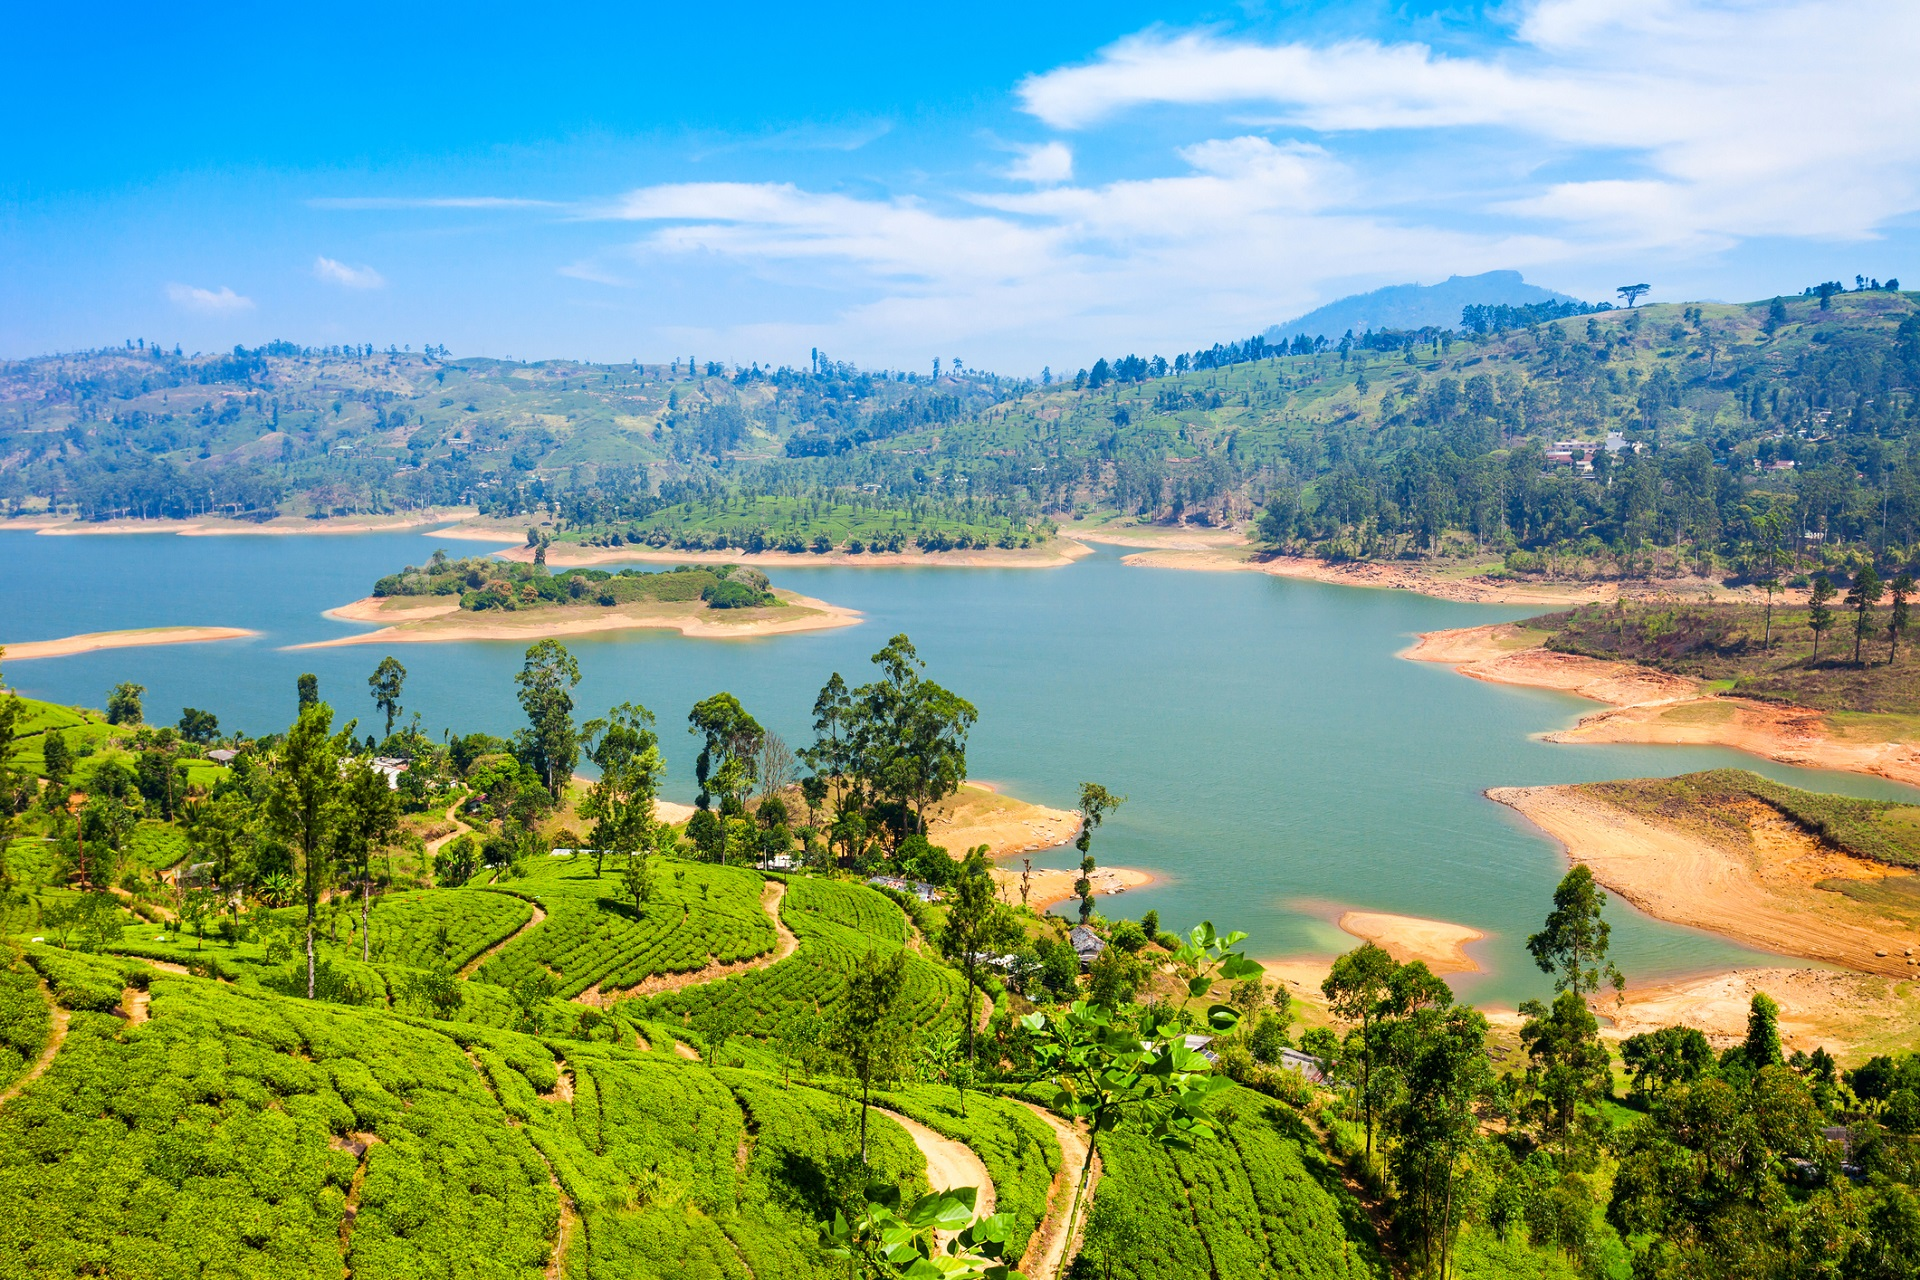 Maussakelle reservoir in Sri Lanka